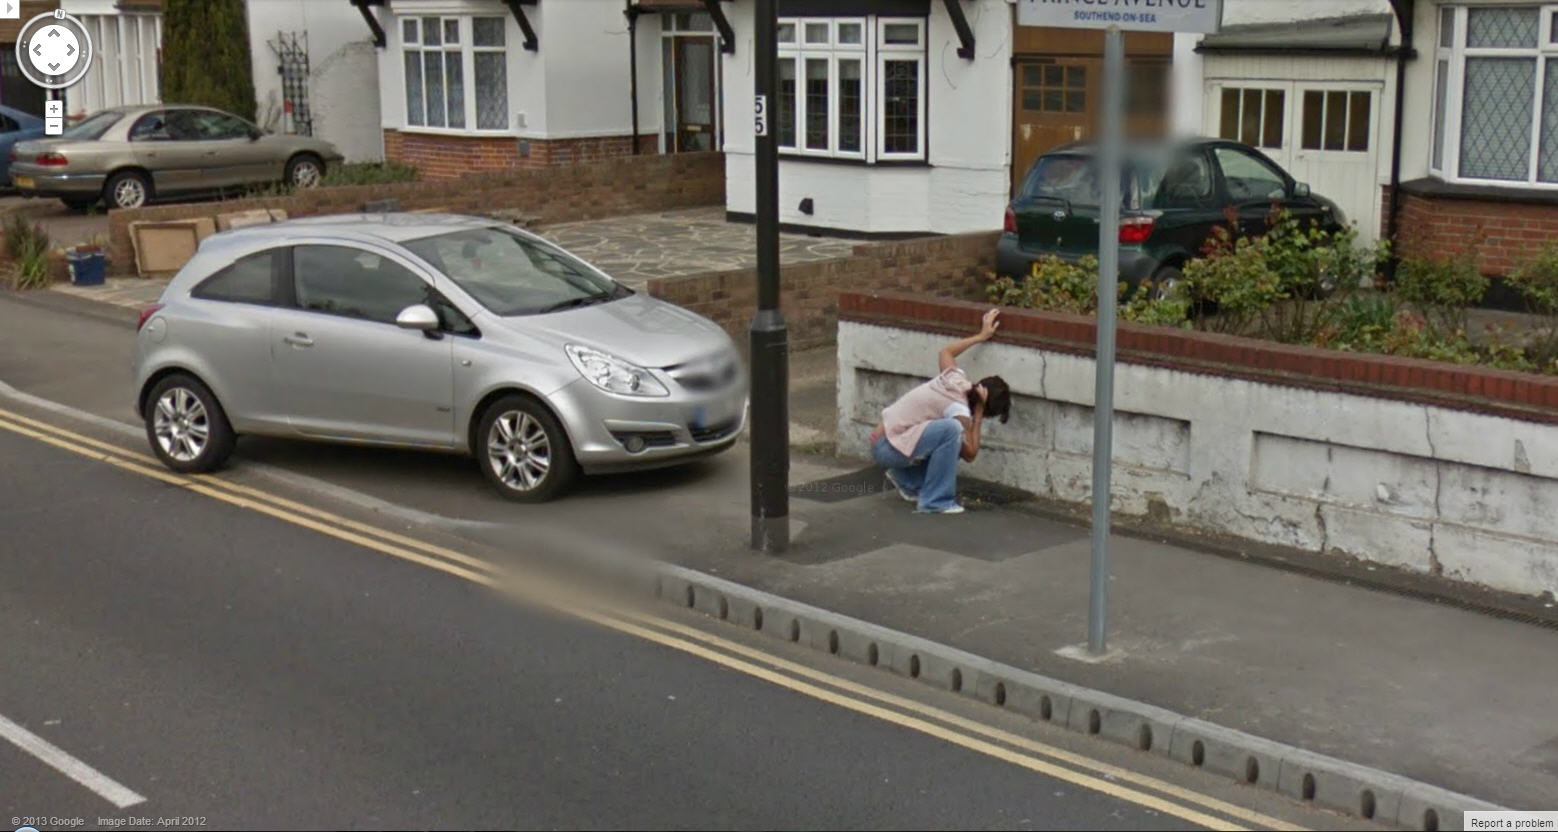 Google Street View UK Captures a Lady Vomiting = Nasty